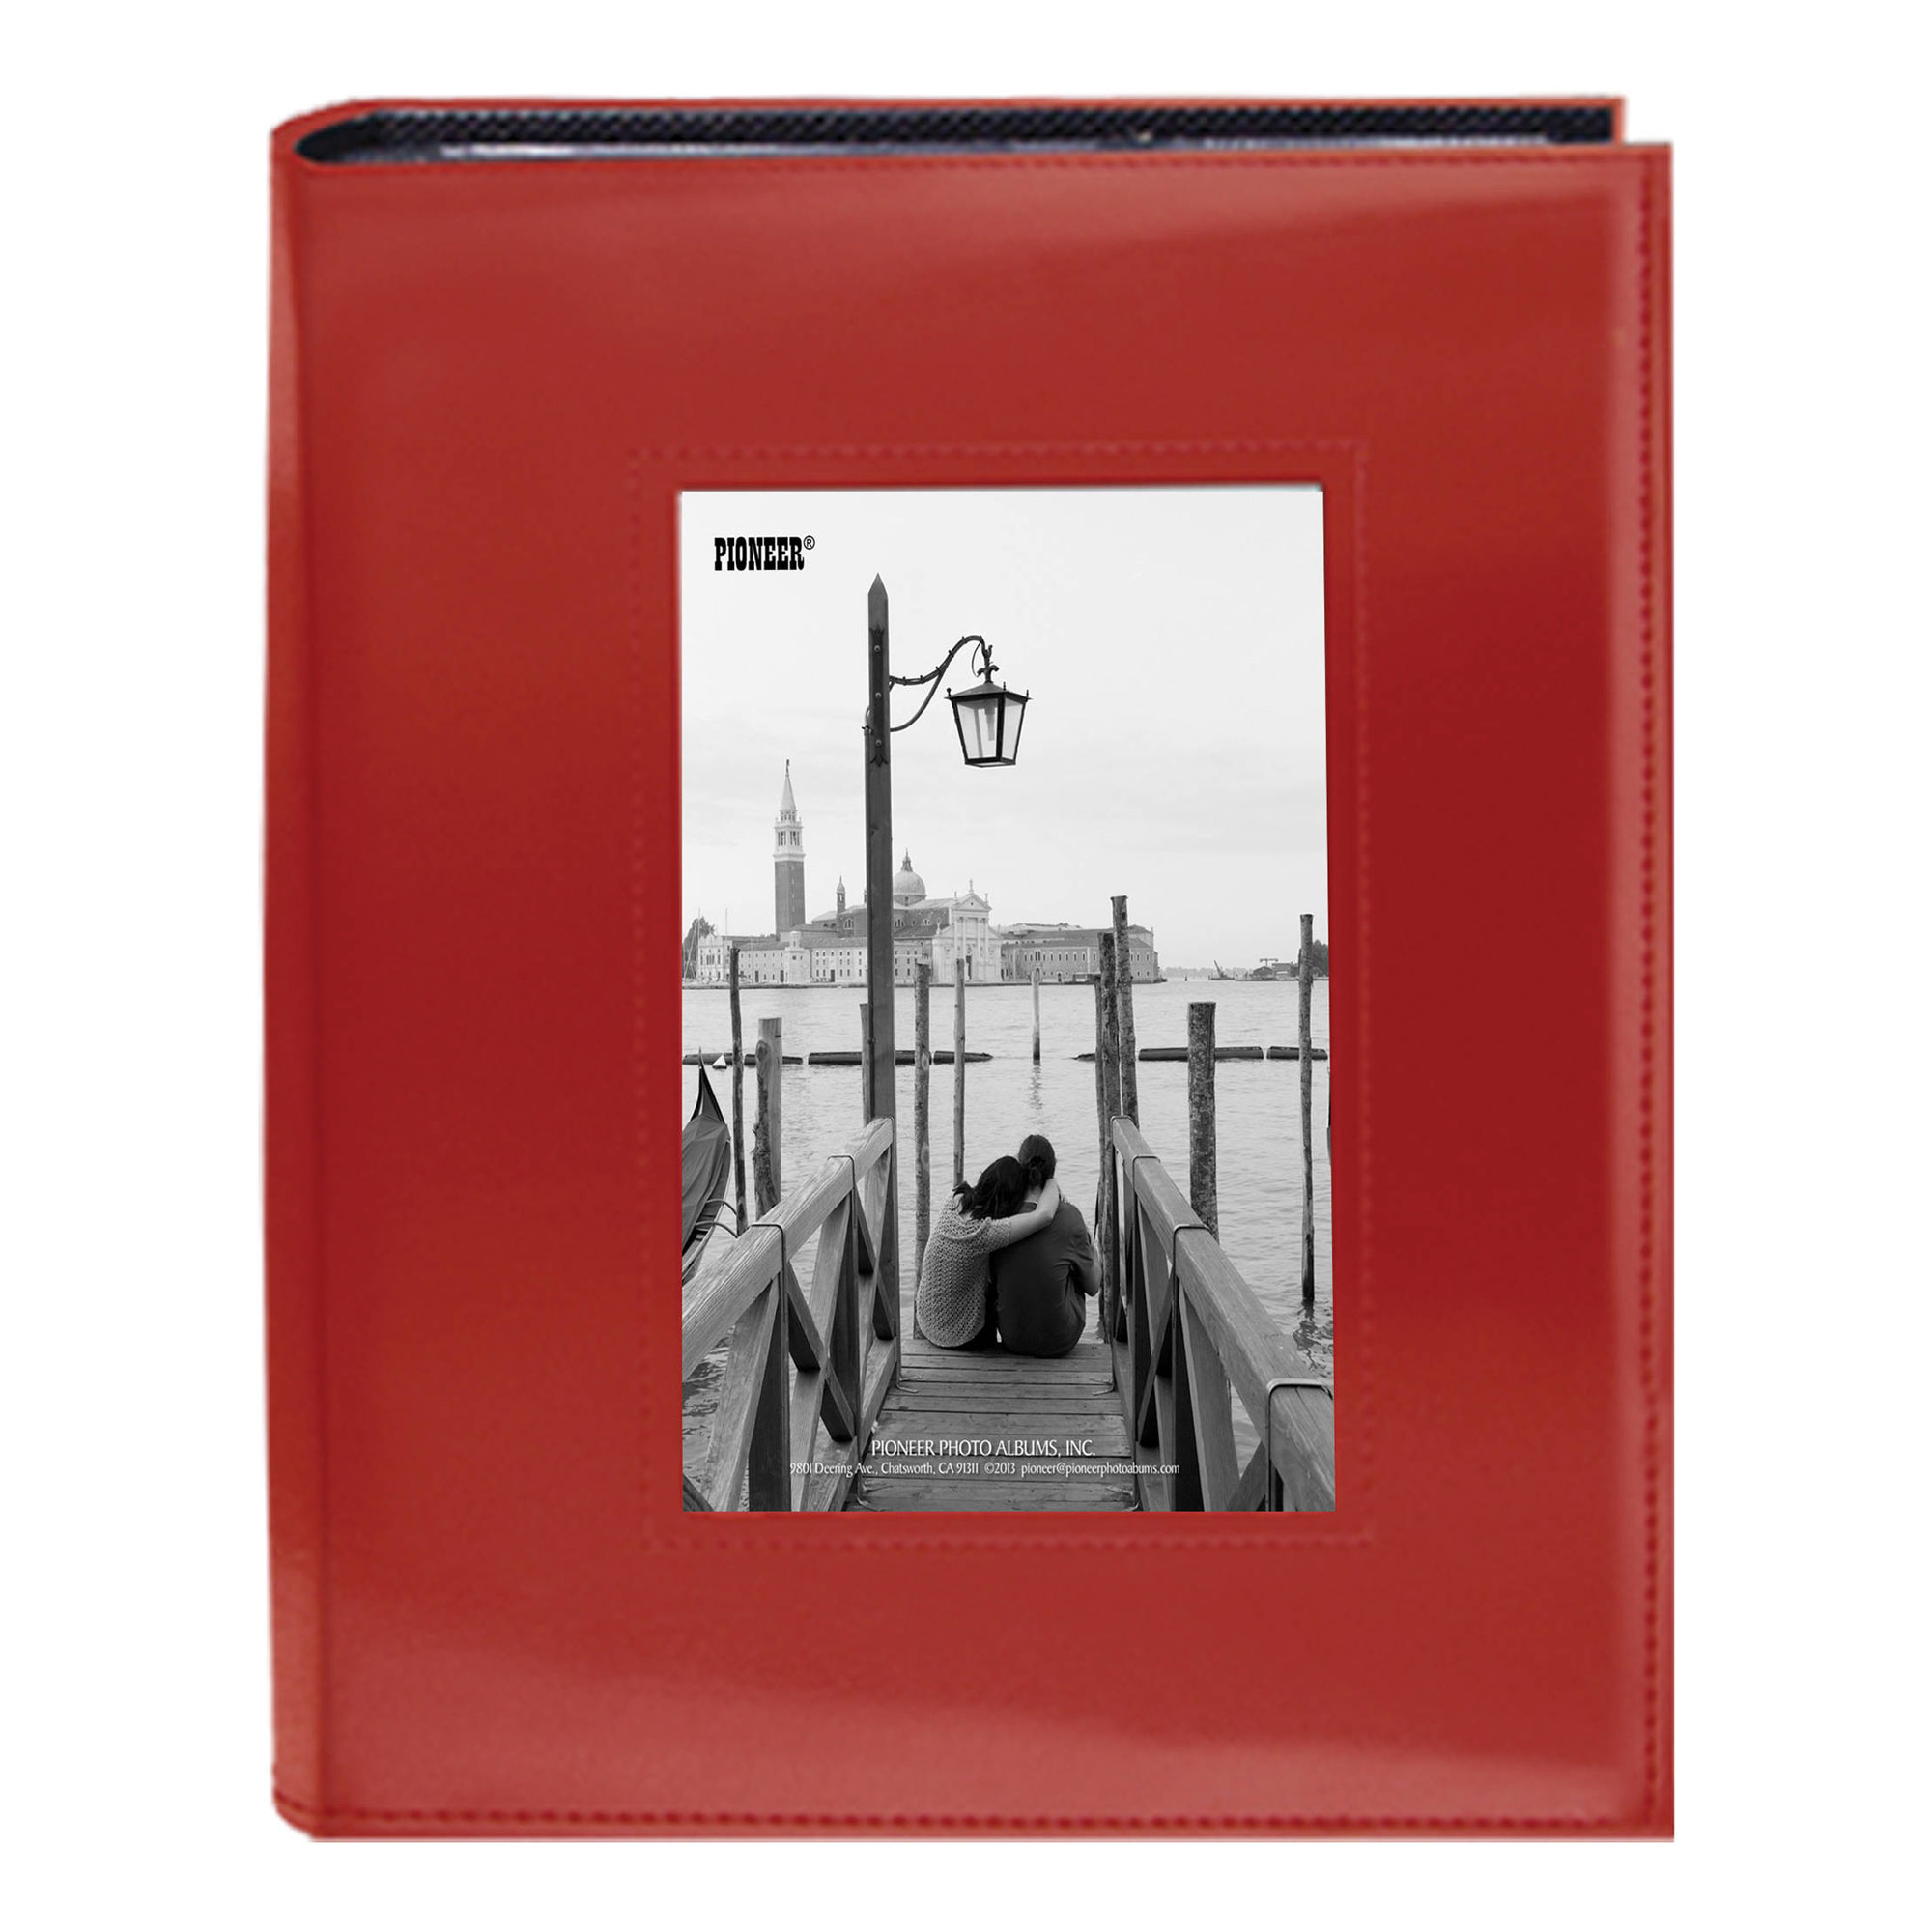 Image of Pioneer 4X6-200 Sewn Frame Photo Album Cutout (Red)